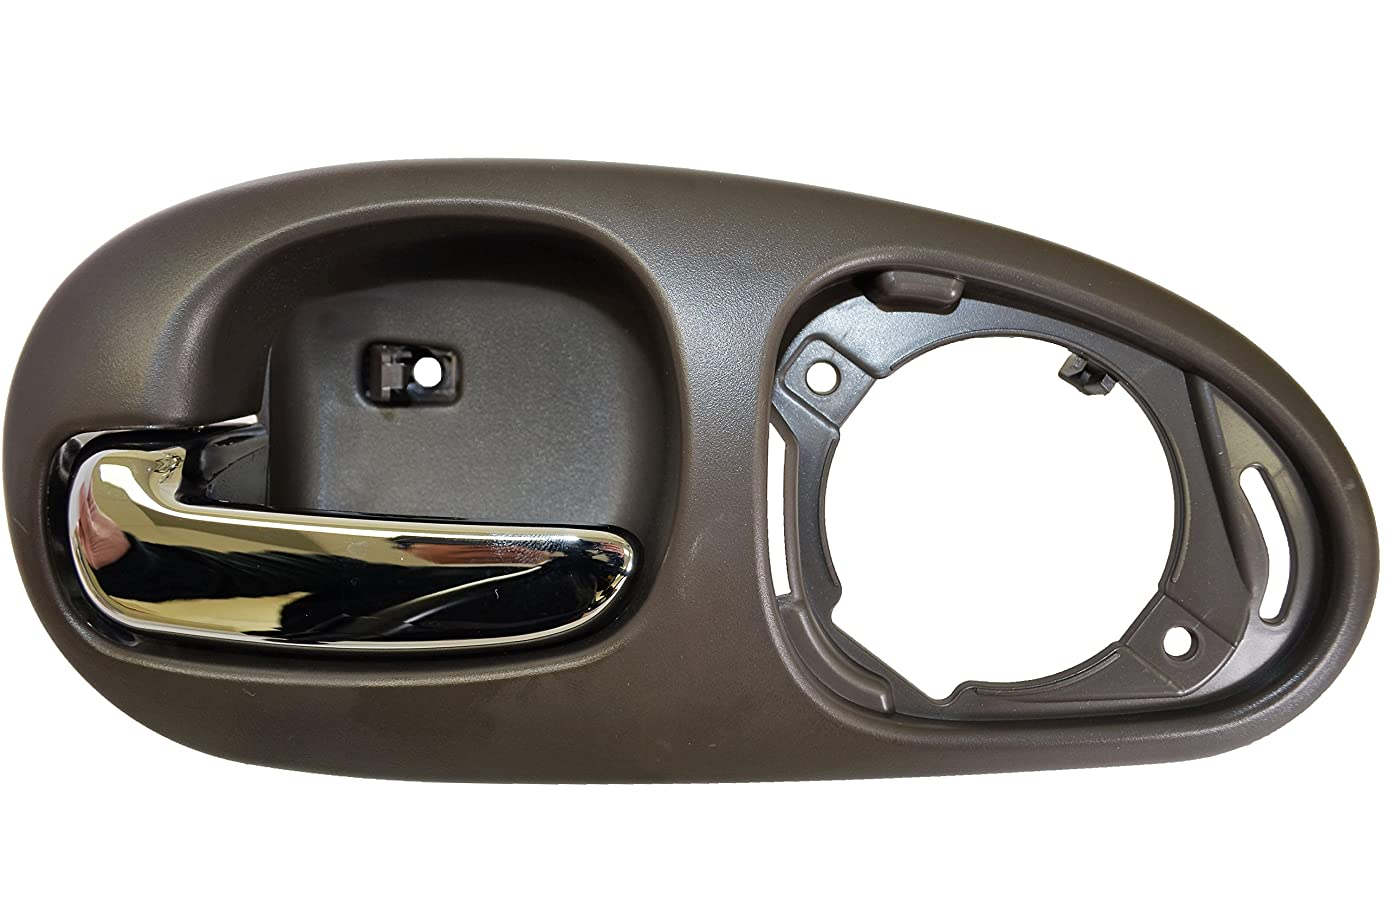 PT Auto Warehouse CH-2334MG-RL - Inside Interior Inner Door Handle, Gray Housing with Chrome Lever - without Speaker Cover, Driver Side Rear